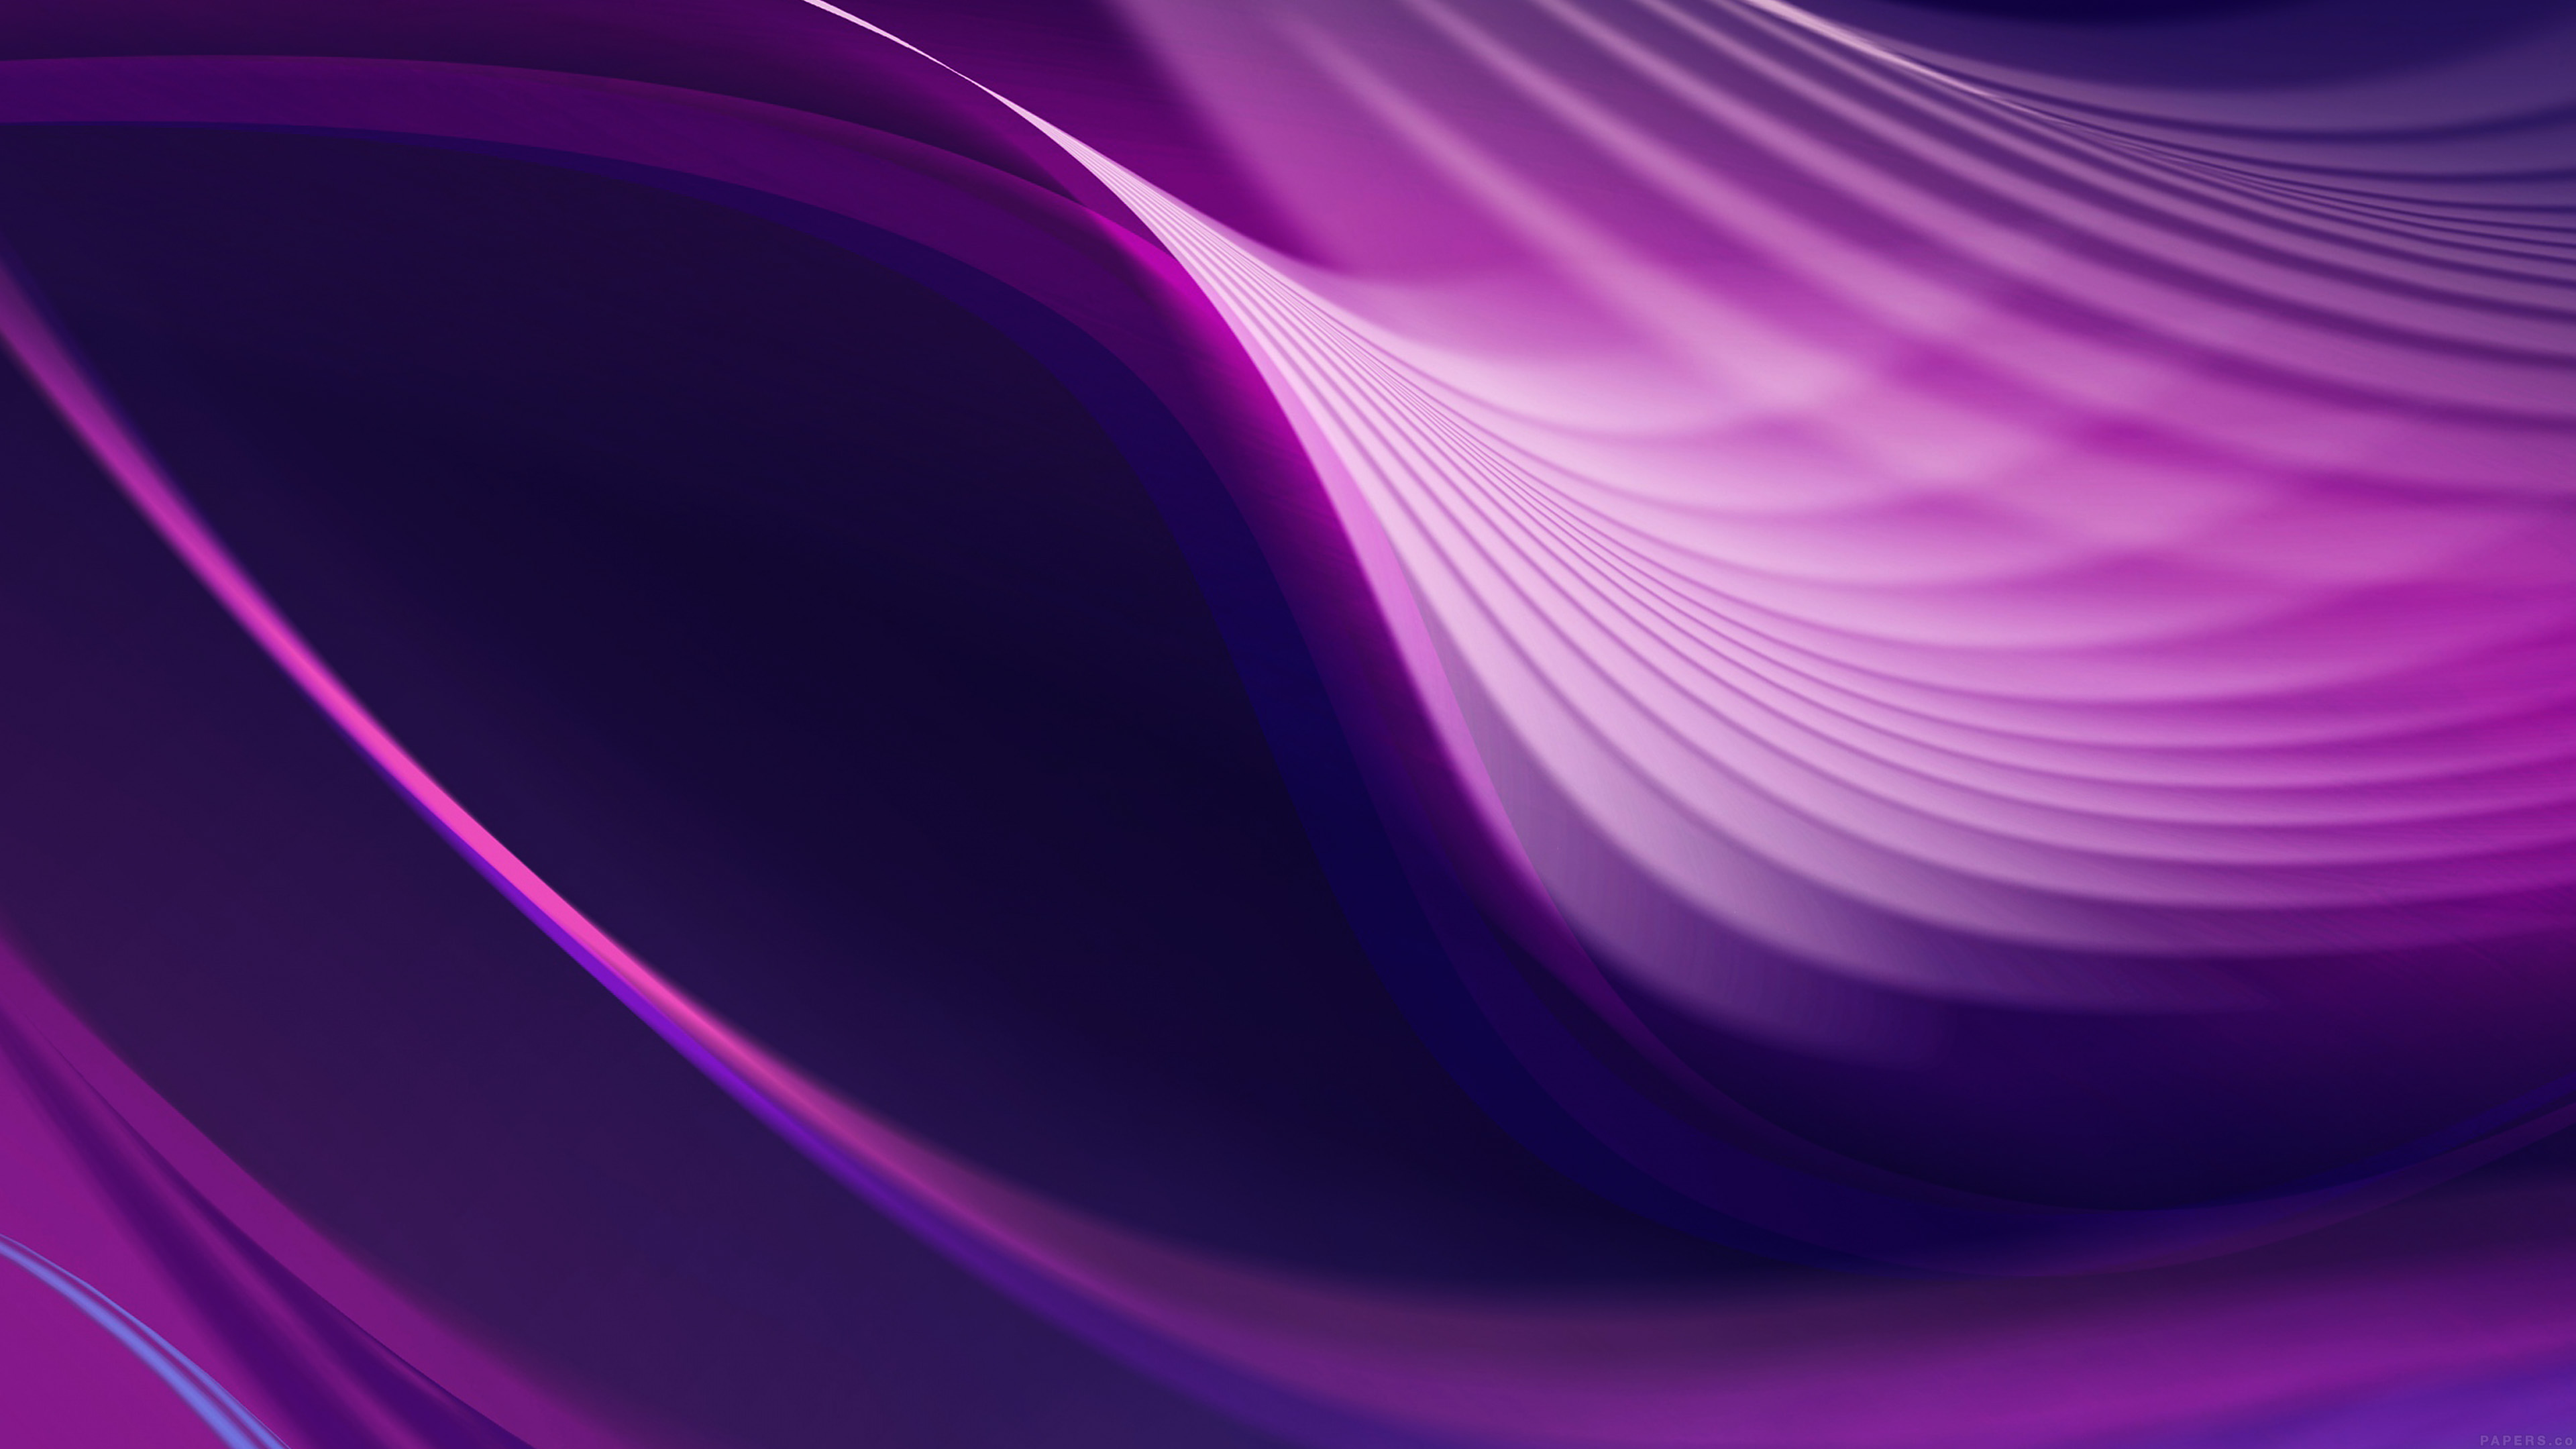 Green City 3d Wallpaper Vi24 Wave Abstract Purple Pattern Papers Co